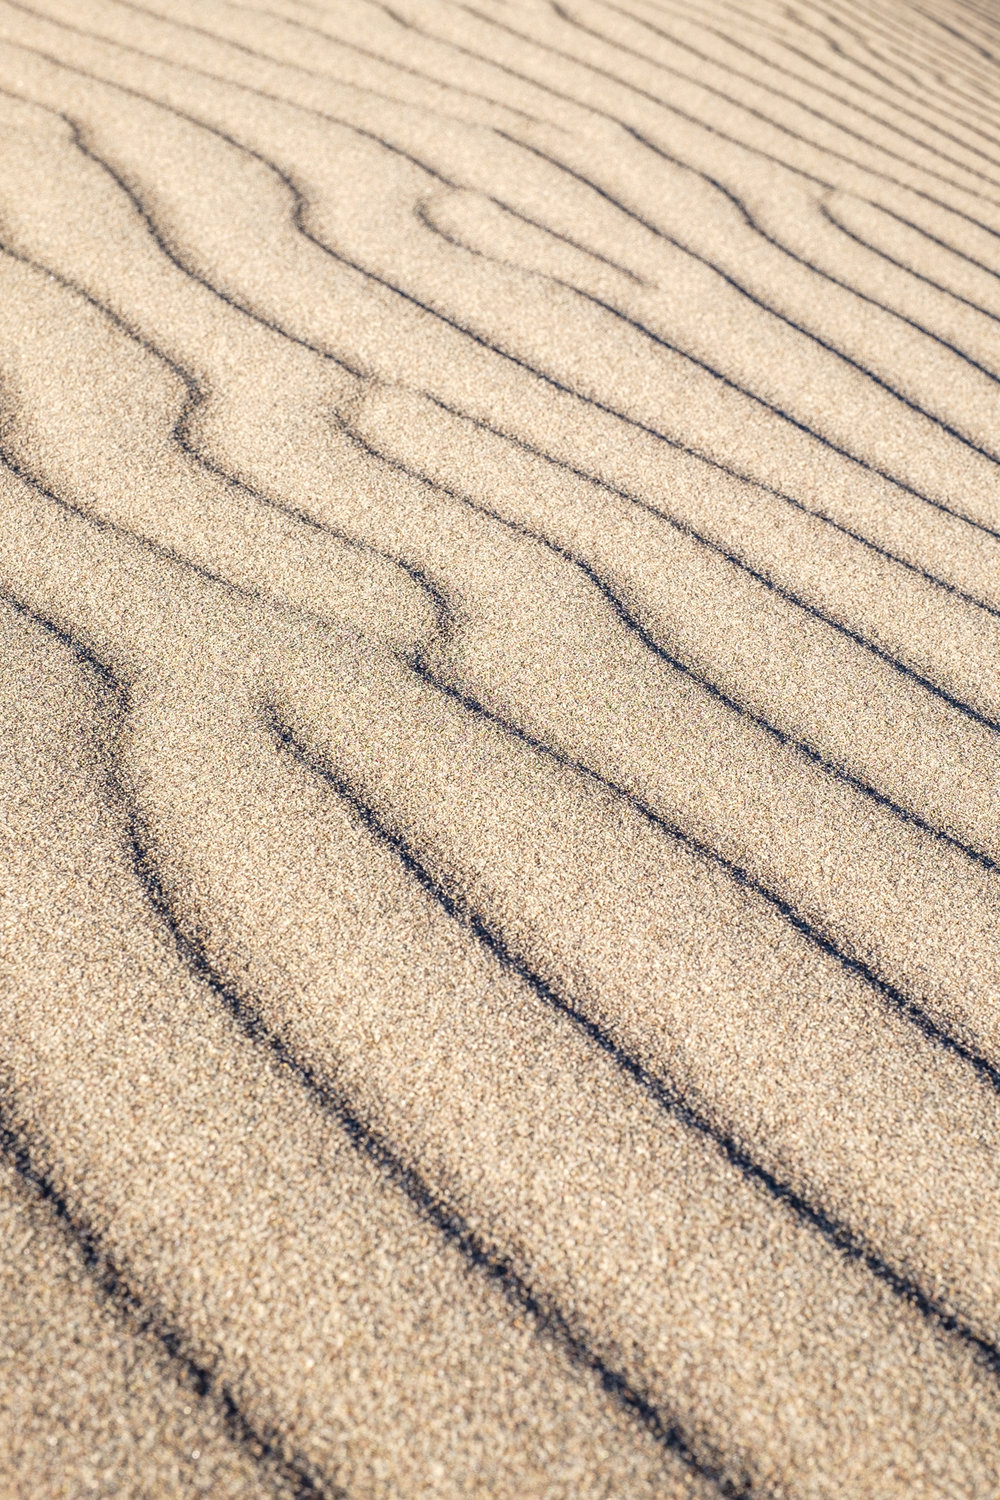 Awesome lines in the sand.